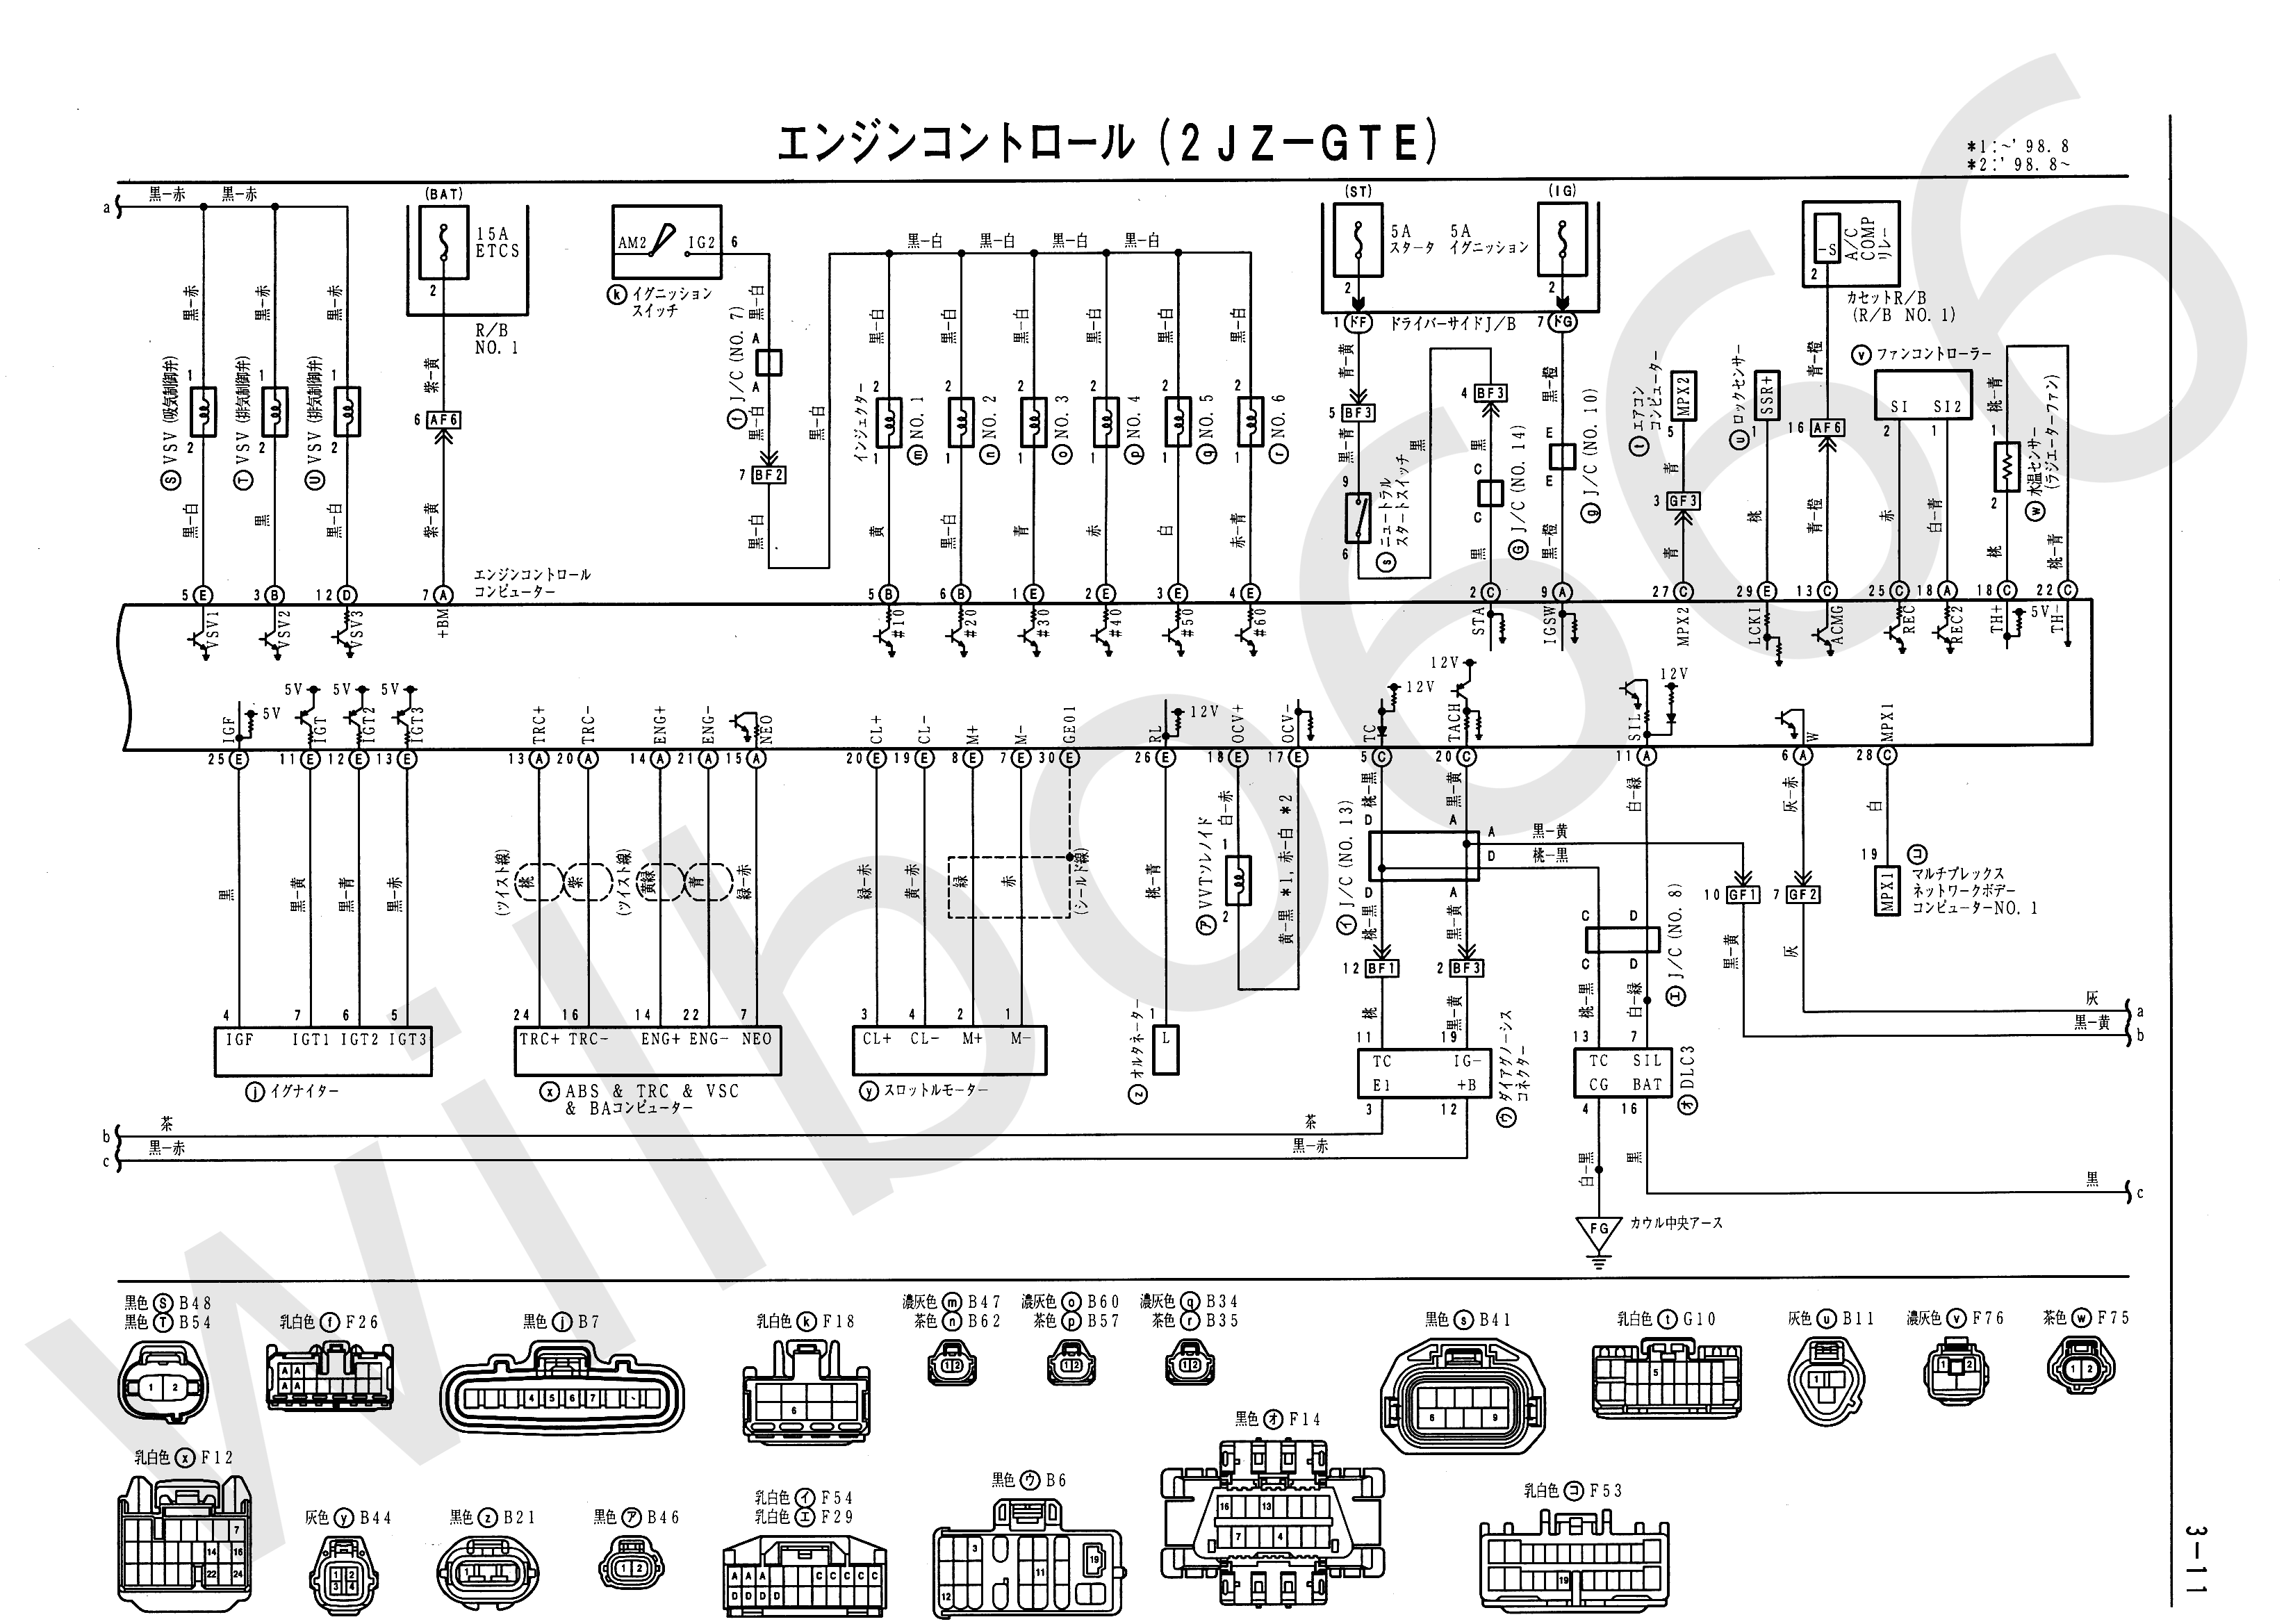 JZS161 Electrical Wiring Diagram 6748505 3 11 wilbo666 2jz gte vvti jzs161 aristo engine wiring Toyota Stereo Wiring Diagram at gsmx.co